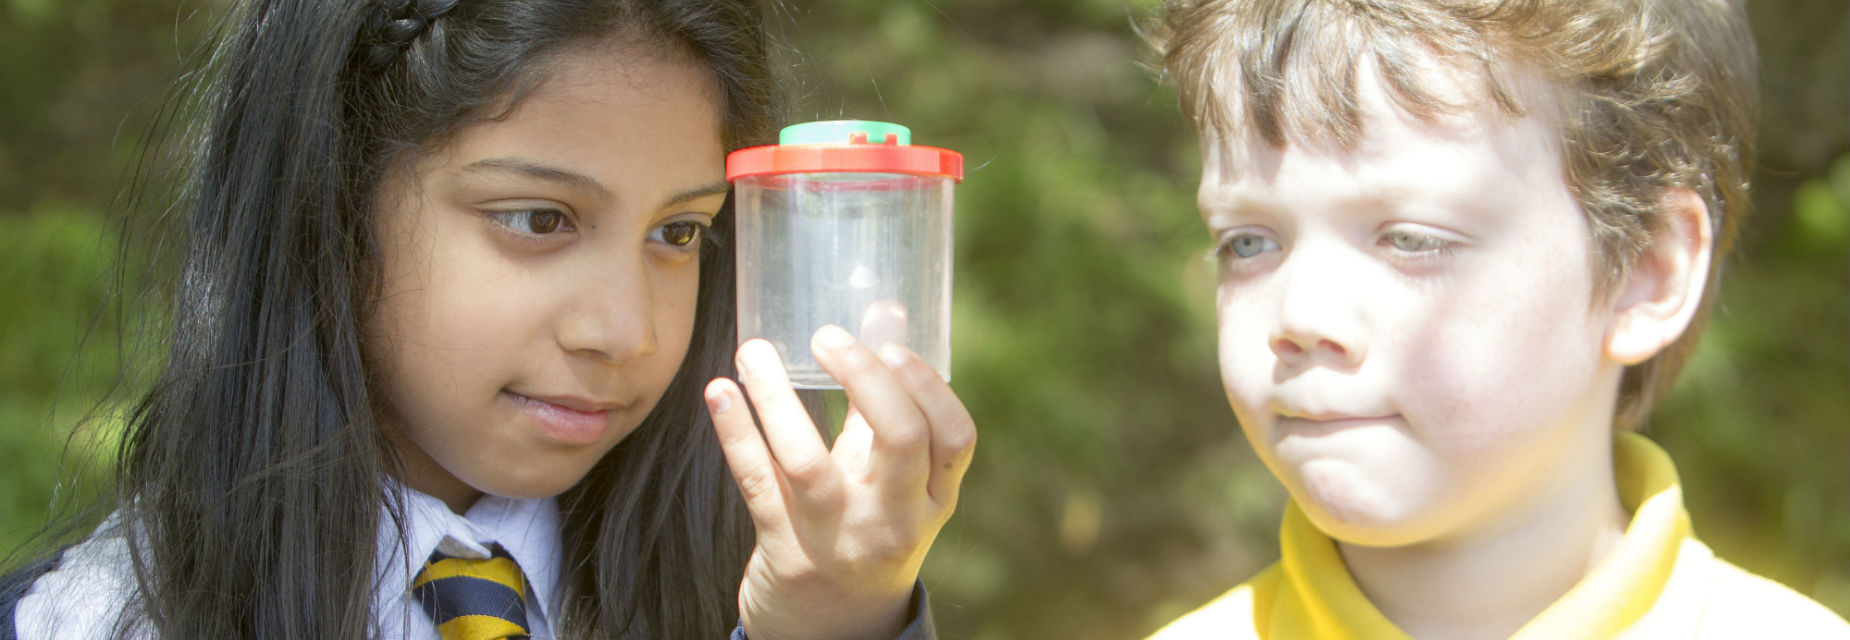 Pupils examine bugs they've collected outdoors as part of an OPAL survey